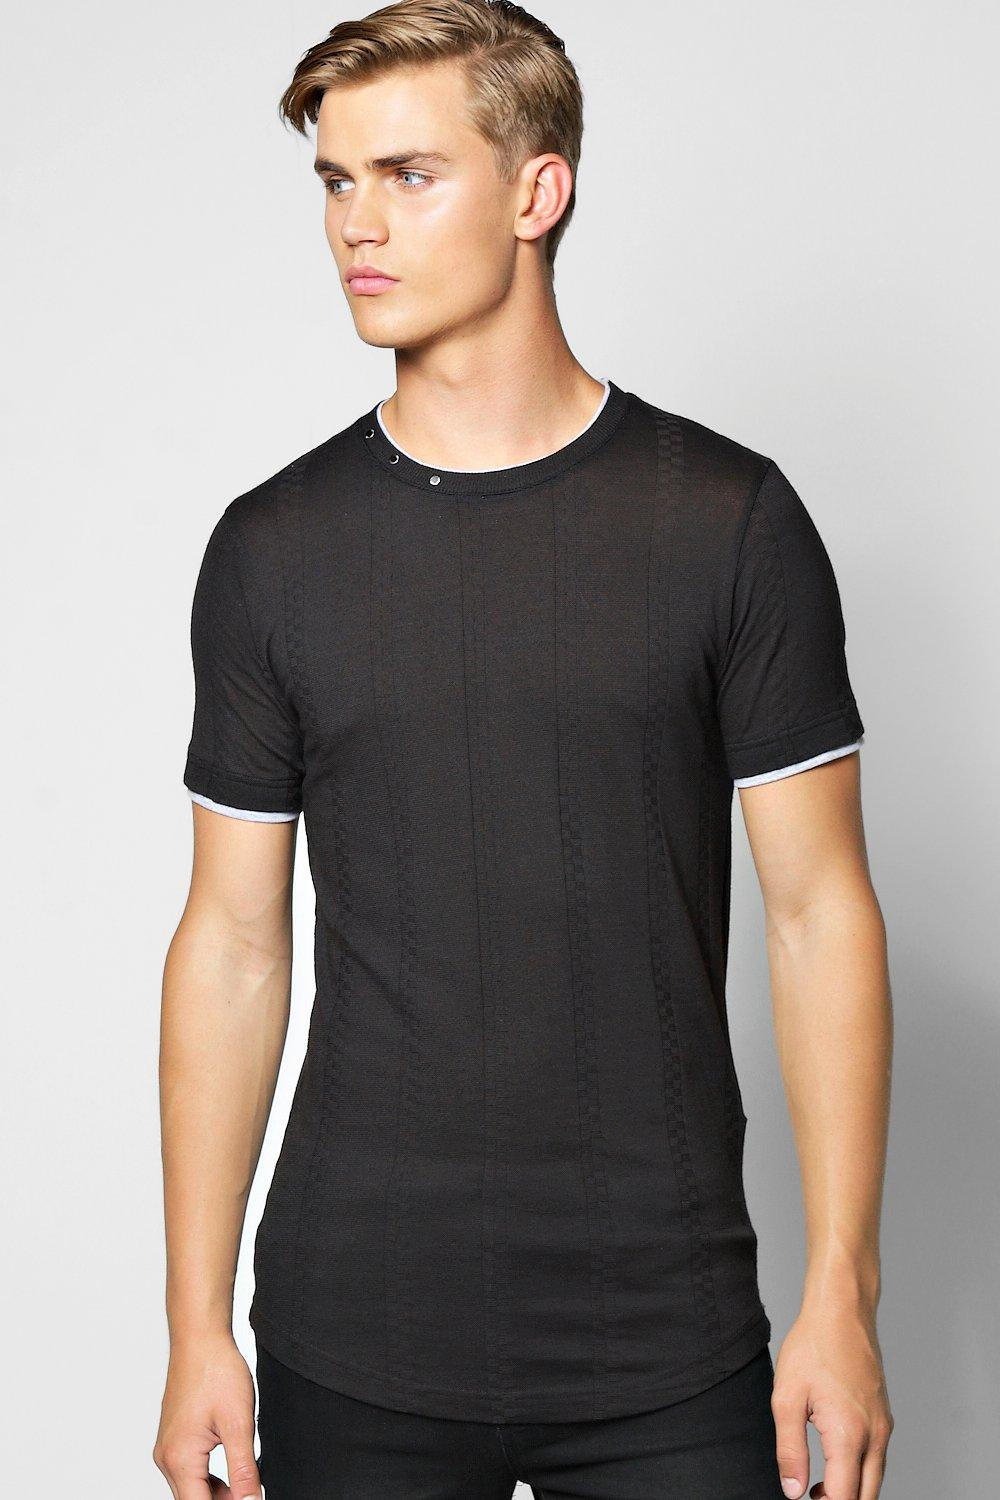 Short Sleeve Muscle Fit Knitted T Shirt